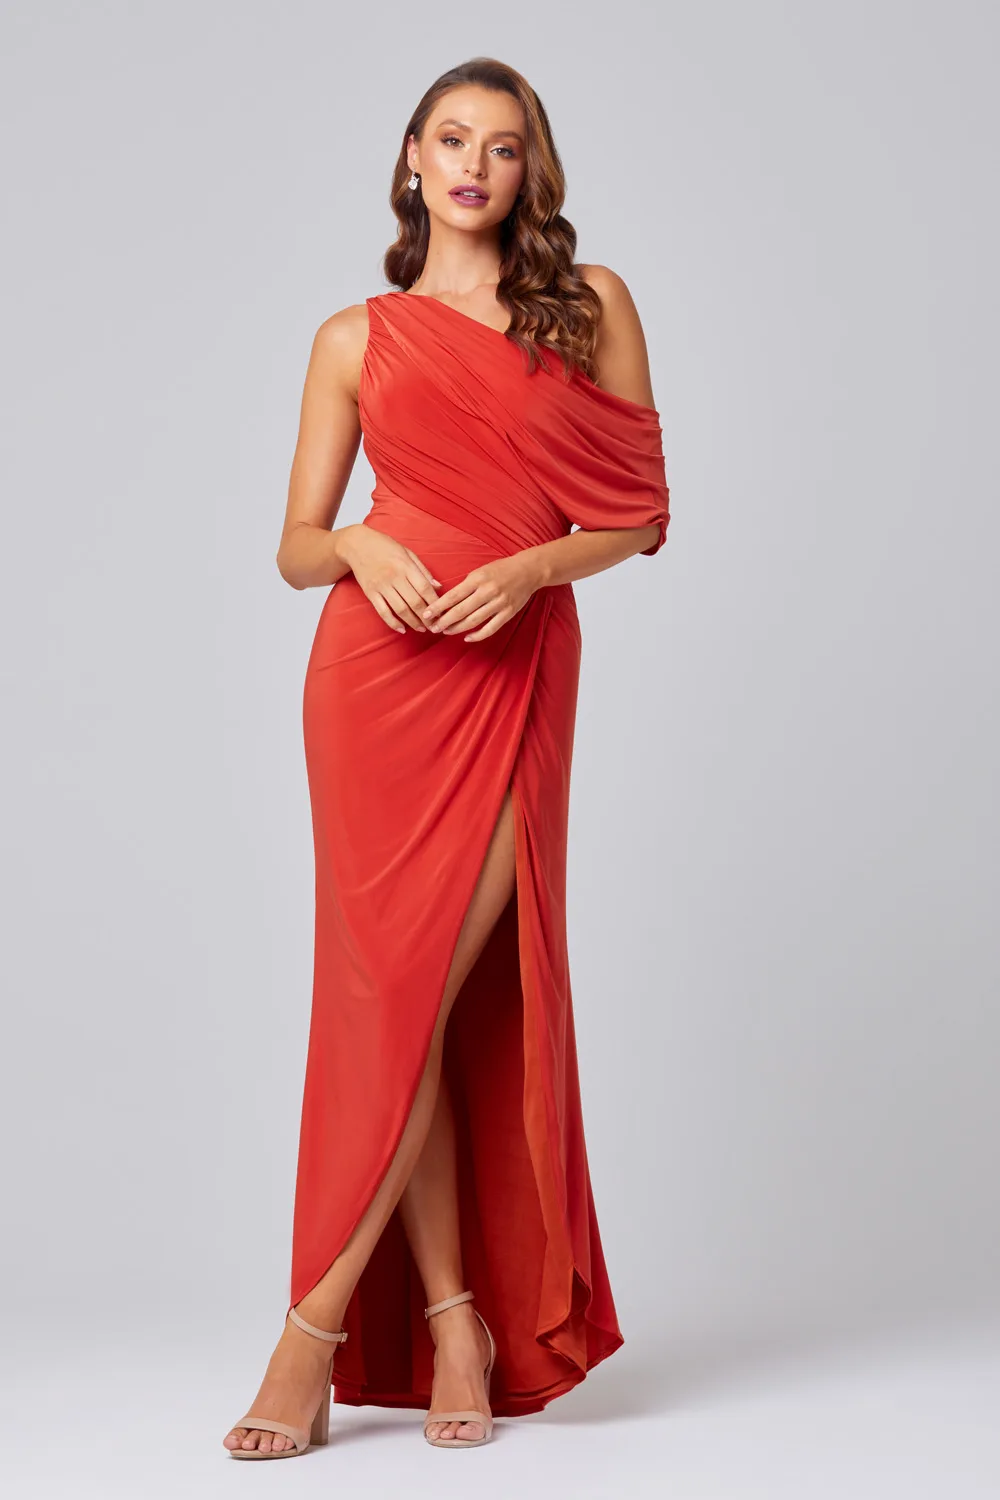 Polly Bridesmaids Dress by Tania Olsen - Burnt Orange